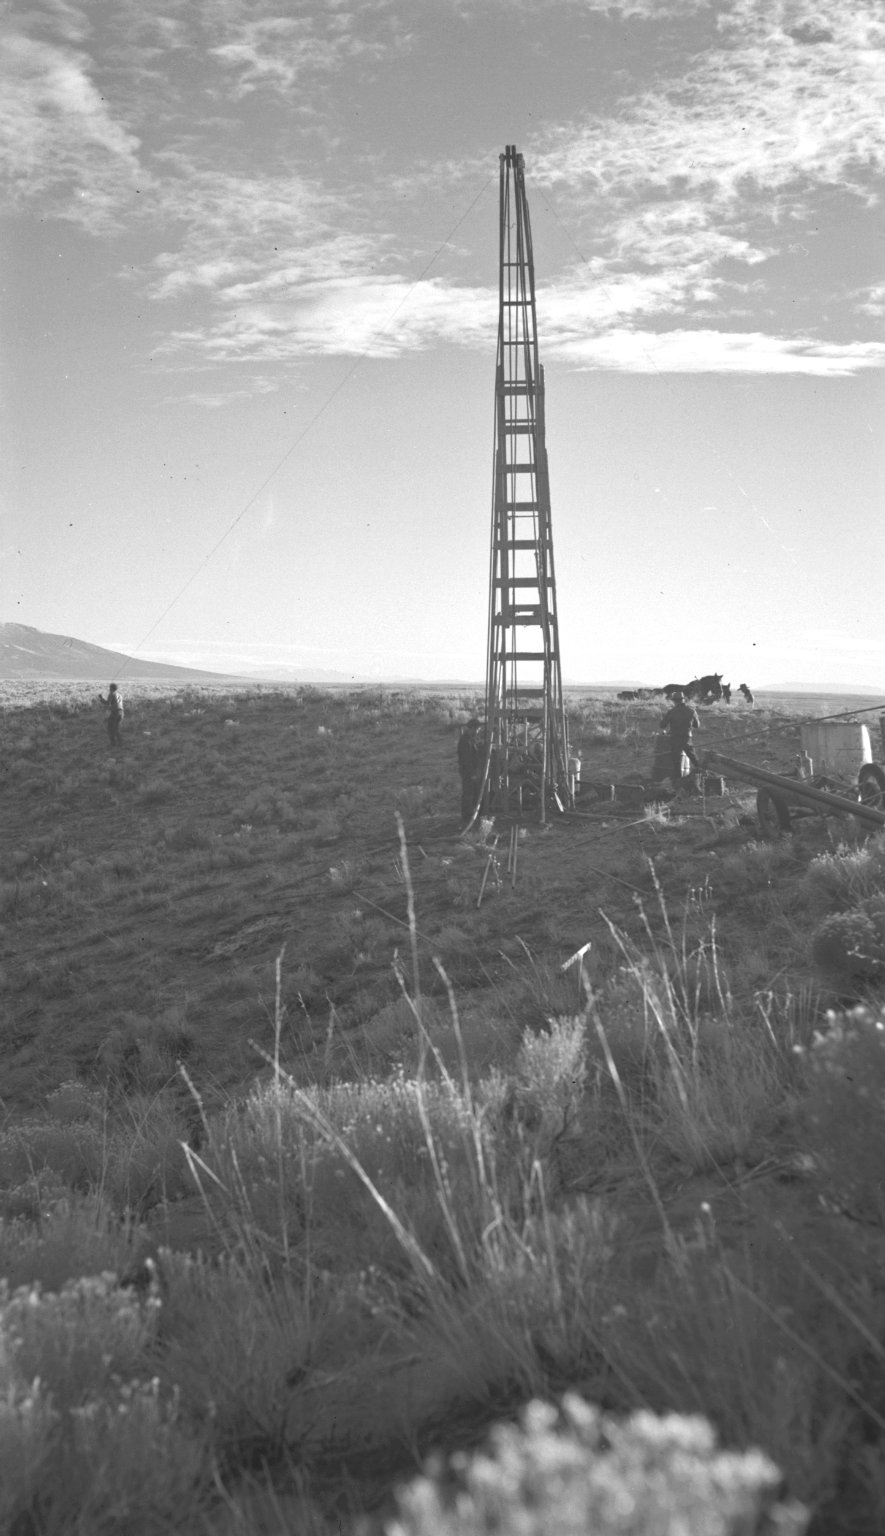 Drilling rig during excavation